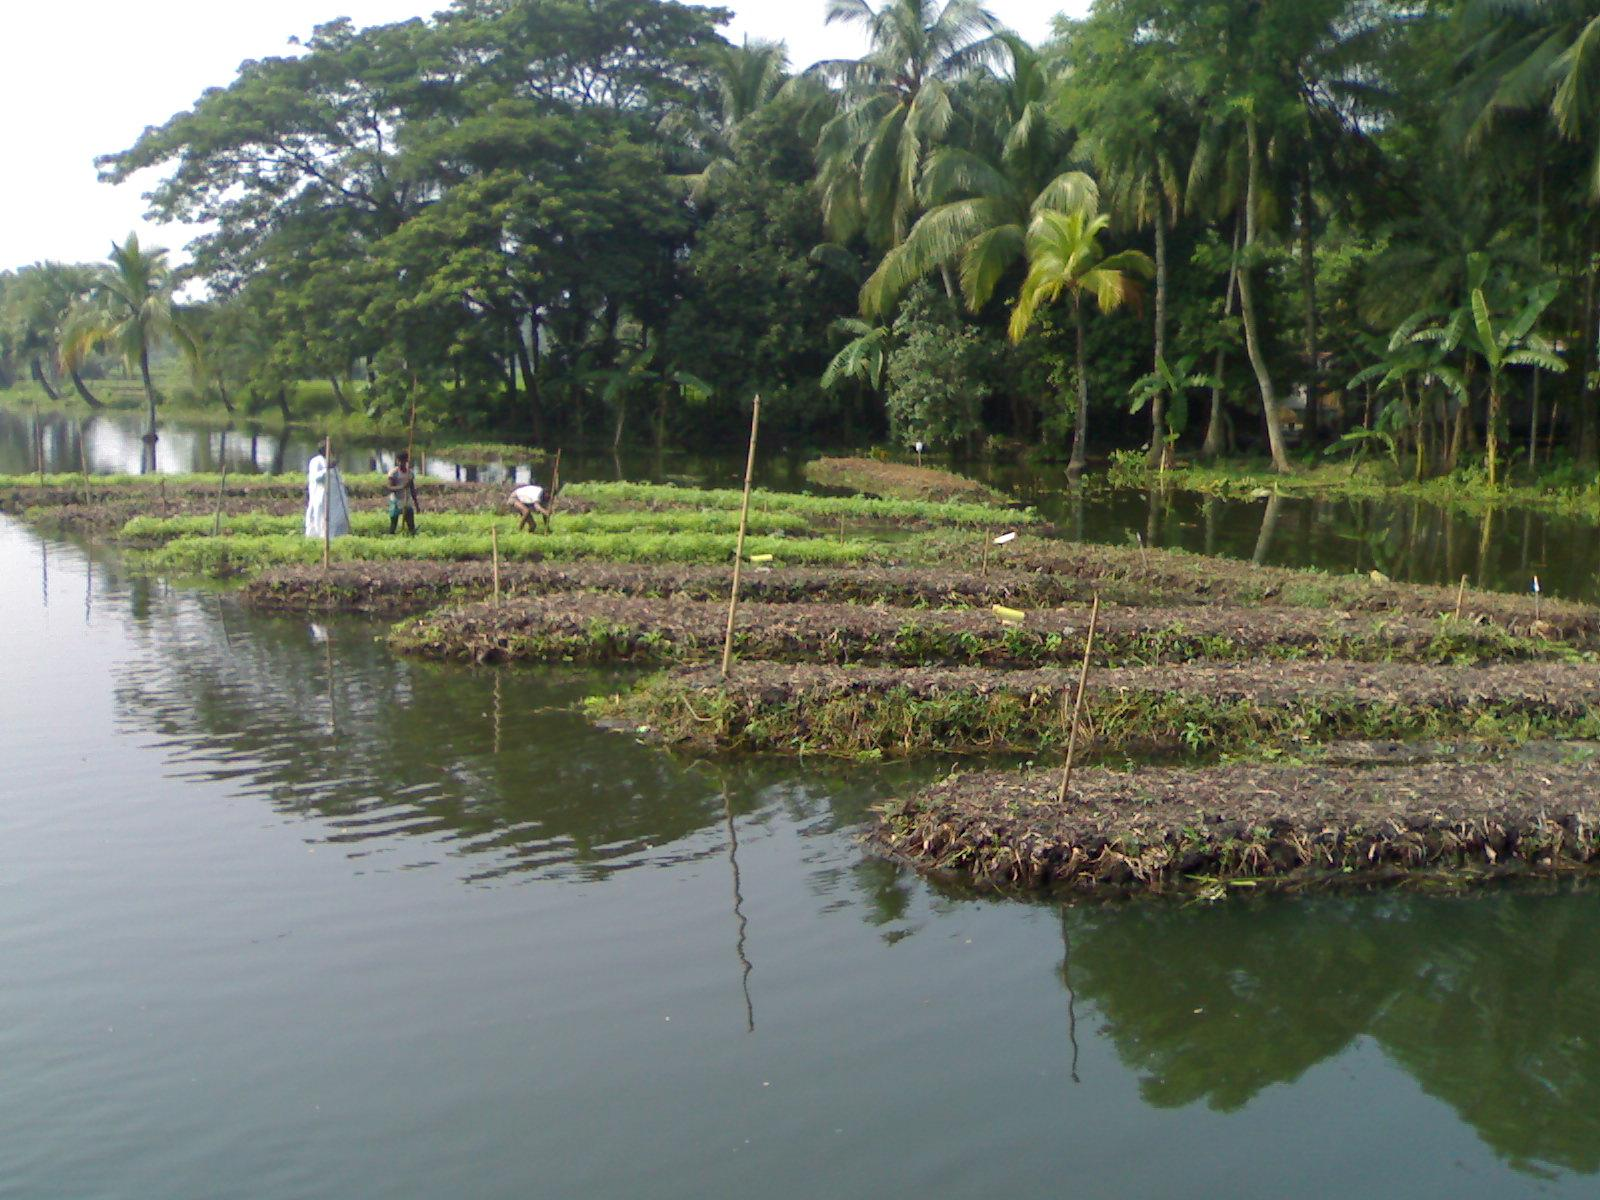 In face of floods and climate change, Bangladesh is turning to floating farms